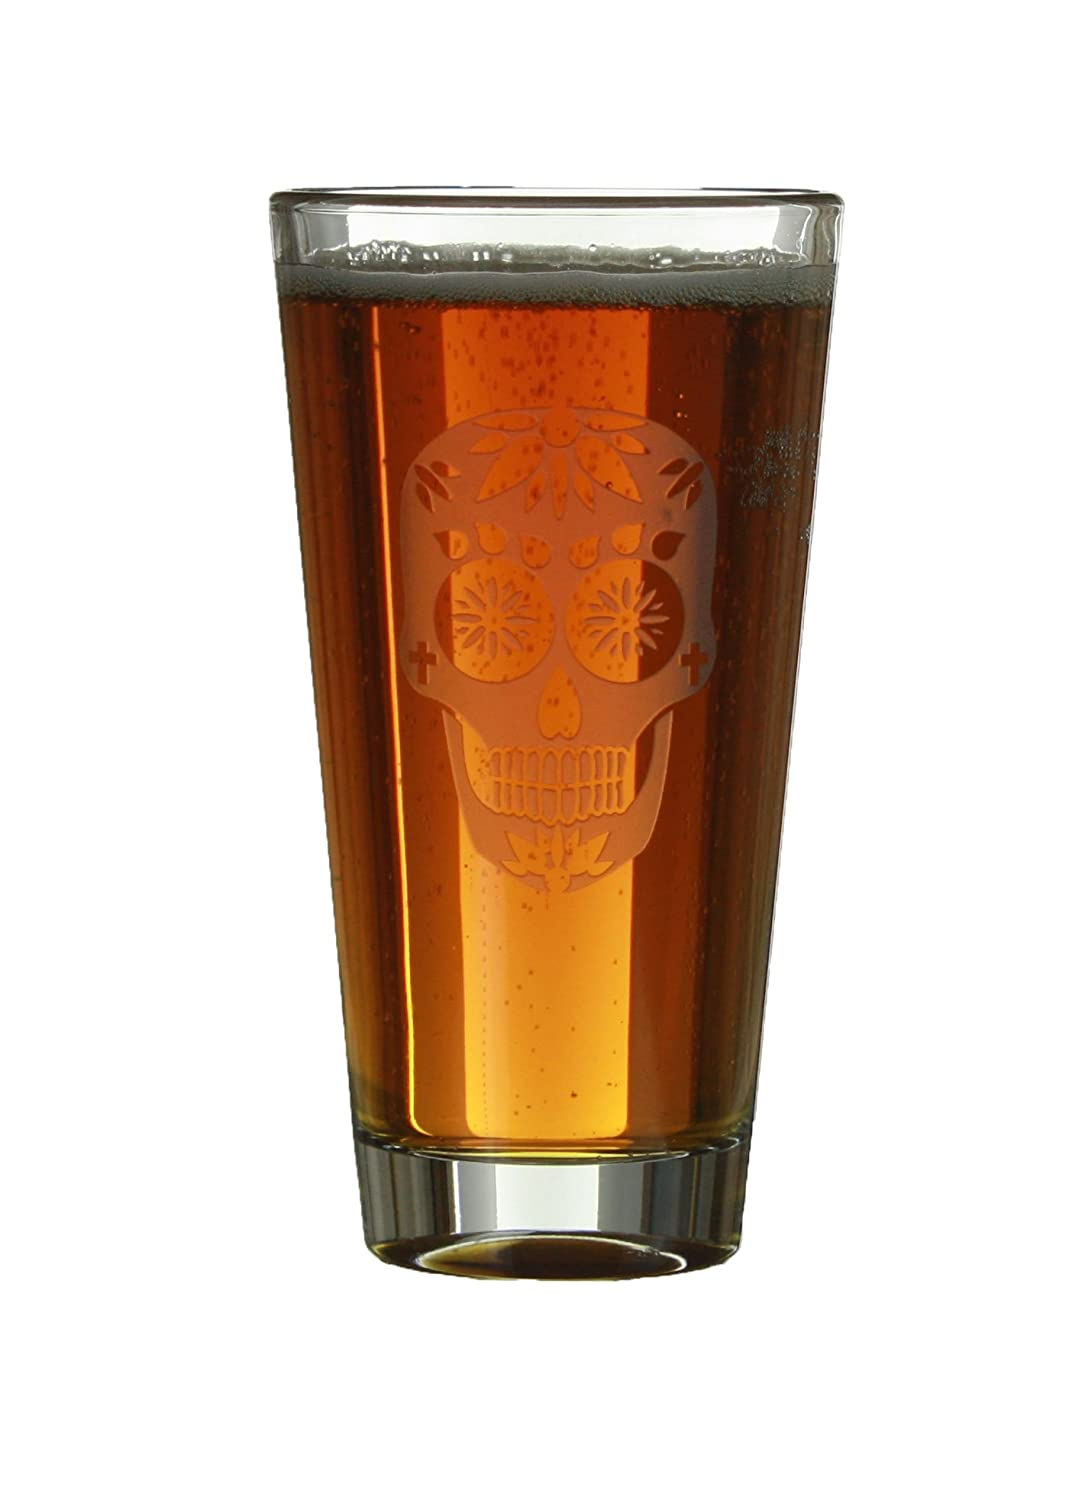 Sugar Skull Engraved Beer/Cider 16oz Pint Glass/Birthday and Anniversary Gift Ideas/By Celery Street (Pint Glass) (Sugar Skull With Hearts on Forehead) Celery Street Design Studios